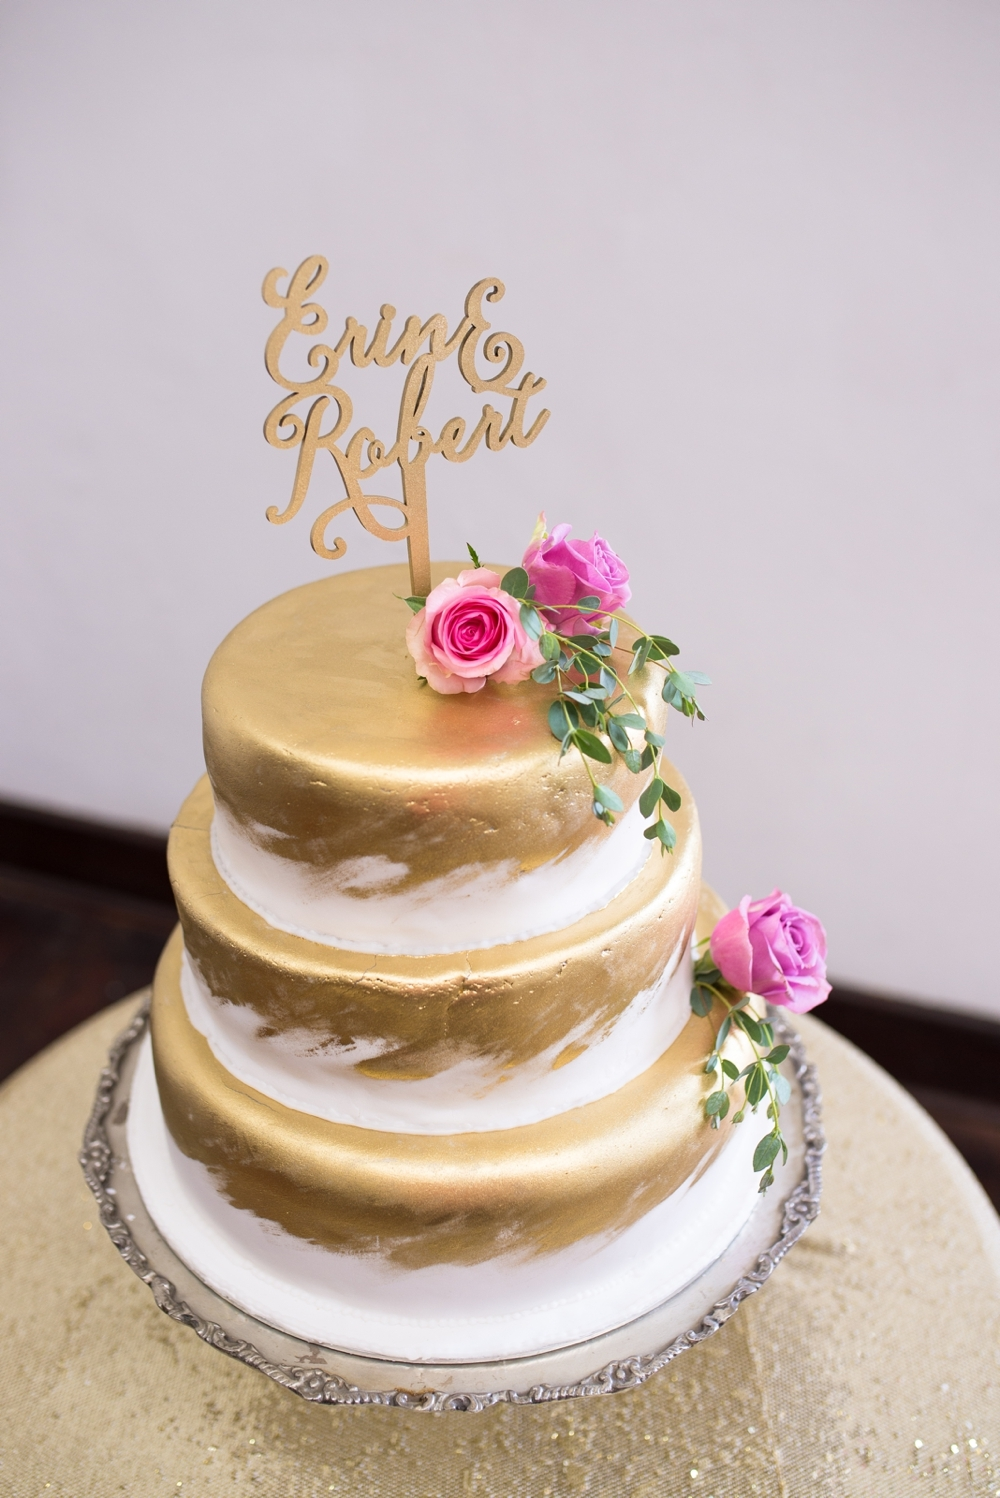 Metallic Gold Wedding Cake | Credit: Cheryl McEwan